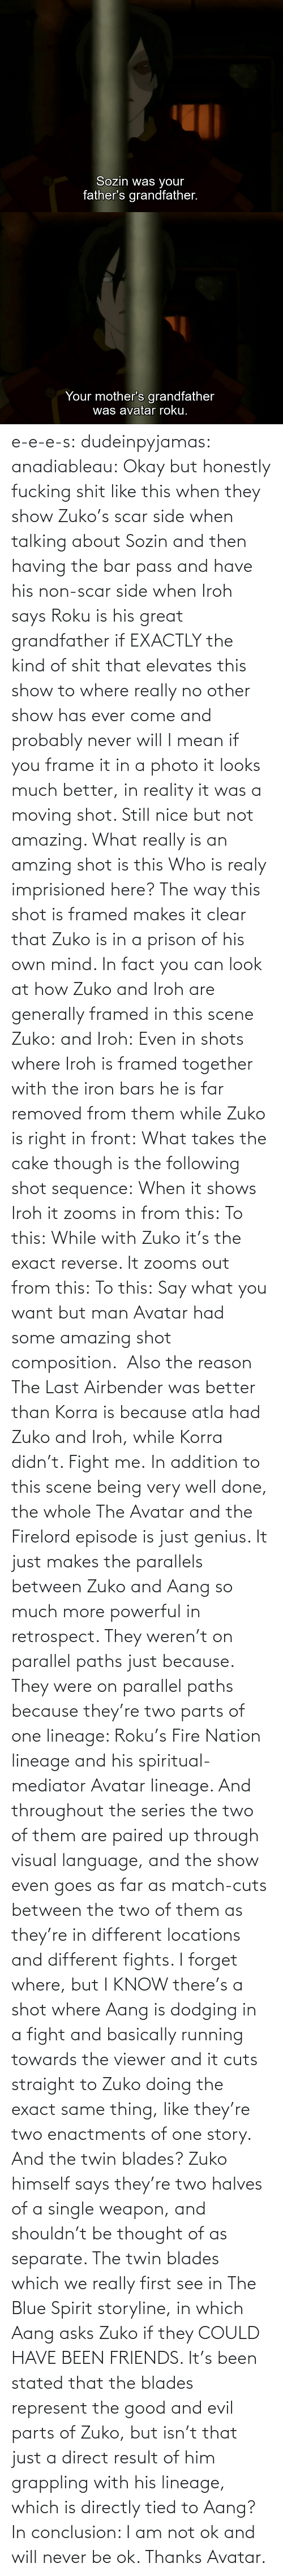 Who Is: e-e-e-s: dudeinpyjamas:   anadiableau: Okay but honestly fucking shit like this when they show Zuko's scar side when talking about Sozin and then having the bar pass and have his non-scar side when Iroh says Roku is his great grandfather if EXACTLY the kind of shit that elevates this show to where really no other show has ever come and probably never will I mean if you frame it in a photo it looks much better, in reality it was a moving shot. Still nice but not amazing. What really is an amzing shot is this Who is realy imprisioned here? The way this shot is framed makes it clear that Zuko is in a prison of his own mind. In fact you can look at how Zuko and Iroh are generally framed in this scene Zuko: and Iroh: Even in shots where Iroh is framed together with the iron bars he is far removed from them while Zuko is right in front:  What takes the cake though is the following shot sequence: When it shows Iroh it zooms in from this: To this: While with Zuko it's the exact reverse. It zooms out from this: To this: Say what you want but man Avatar had some amazing shot composition.   Also the reason The Last Airbender was better than Korra is because atla had Zuko and Iroh, while Korra didn't. Fight me.    In addition to this scene being very well done, the whole The Avatar and the Firelord episode is just genius.  It just makes the parallels between Zuko and Aang so much more powerful in retrospect.  They weren't on parallel paths just because.  They were on parallel paths because they're two parts of one lineage: Roku's Fire Nation lineage and his spiritual-mediator Avatar lineage.  And throughout the series the two of them are paired up through visual language, and the show even goes as far as match-cuts between the two of them as they're in different locations and different fights.  I forget where, but I KNOW there's a shot where Aang is dodging in a fight and basically running towards the viewer and it cuts straight to Zuko doing the exact same thing, like they're two enactments of one story.   And the twin blades?  Zuko himself says they're two halves of a single weapon, and shouldn't be thought of as separate.  The twin blades which we really first see in The Blue Spirit storyline, in which Aang asks Zuko if they COULD HAVE BEEN FRIENDS.  It's been stated that the blades represent the good and evil parts of Zuko, but isn't that just a direct result of him grappling with his lineage, which is directly tied to Aang? In conclusion: I am not ok and will never be ok.  Thanks Avatar.